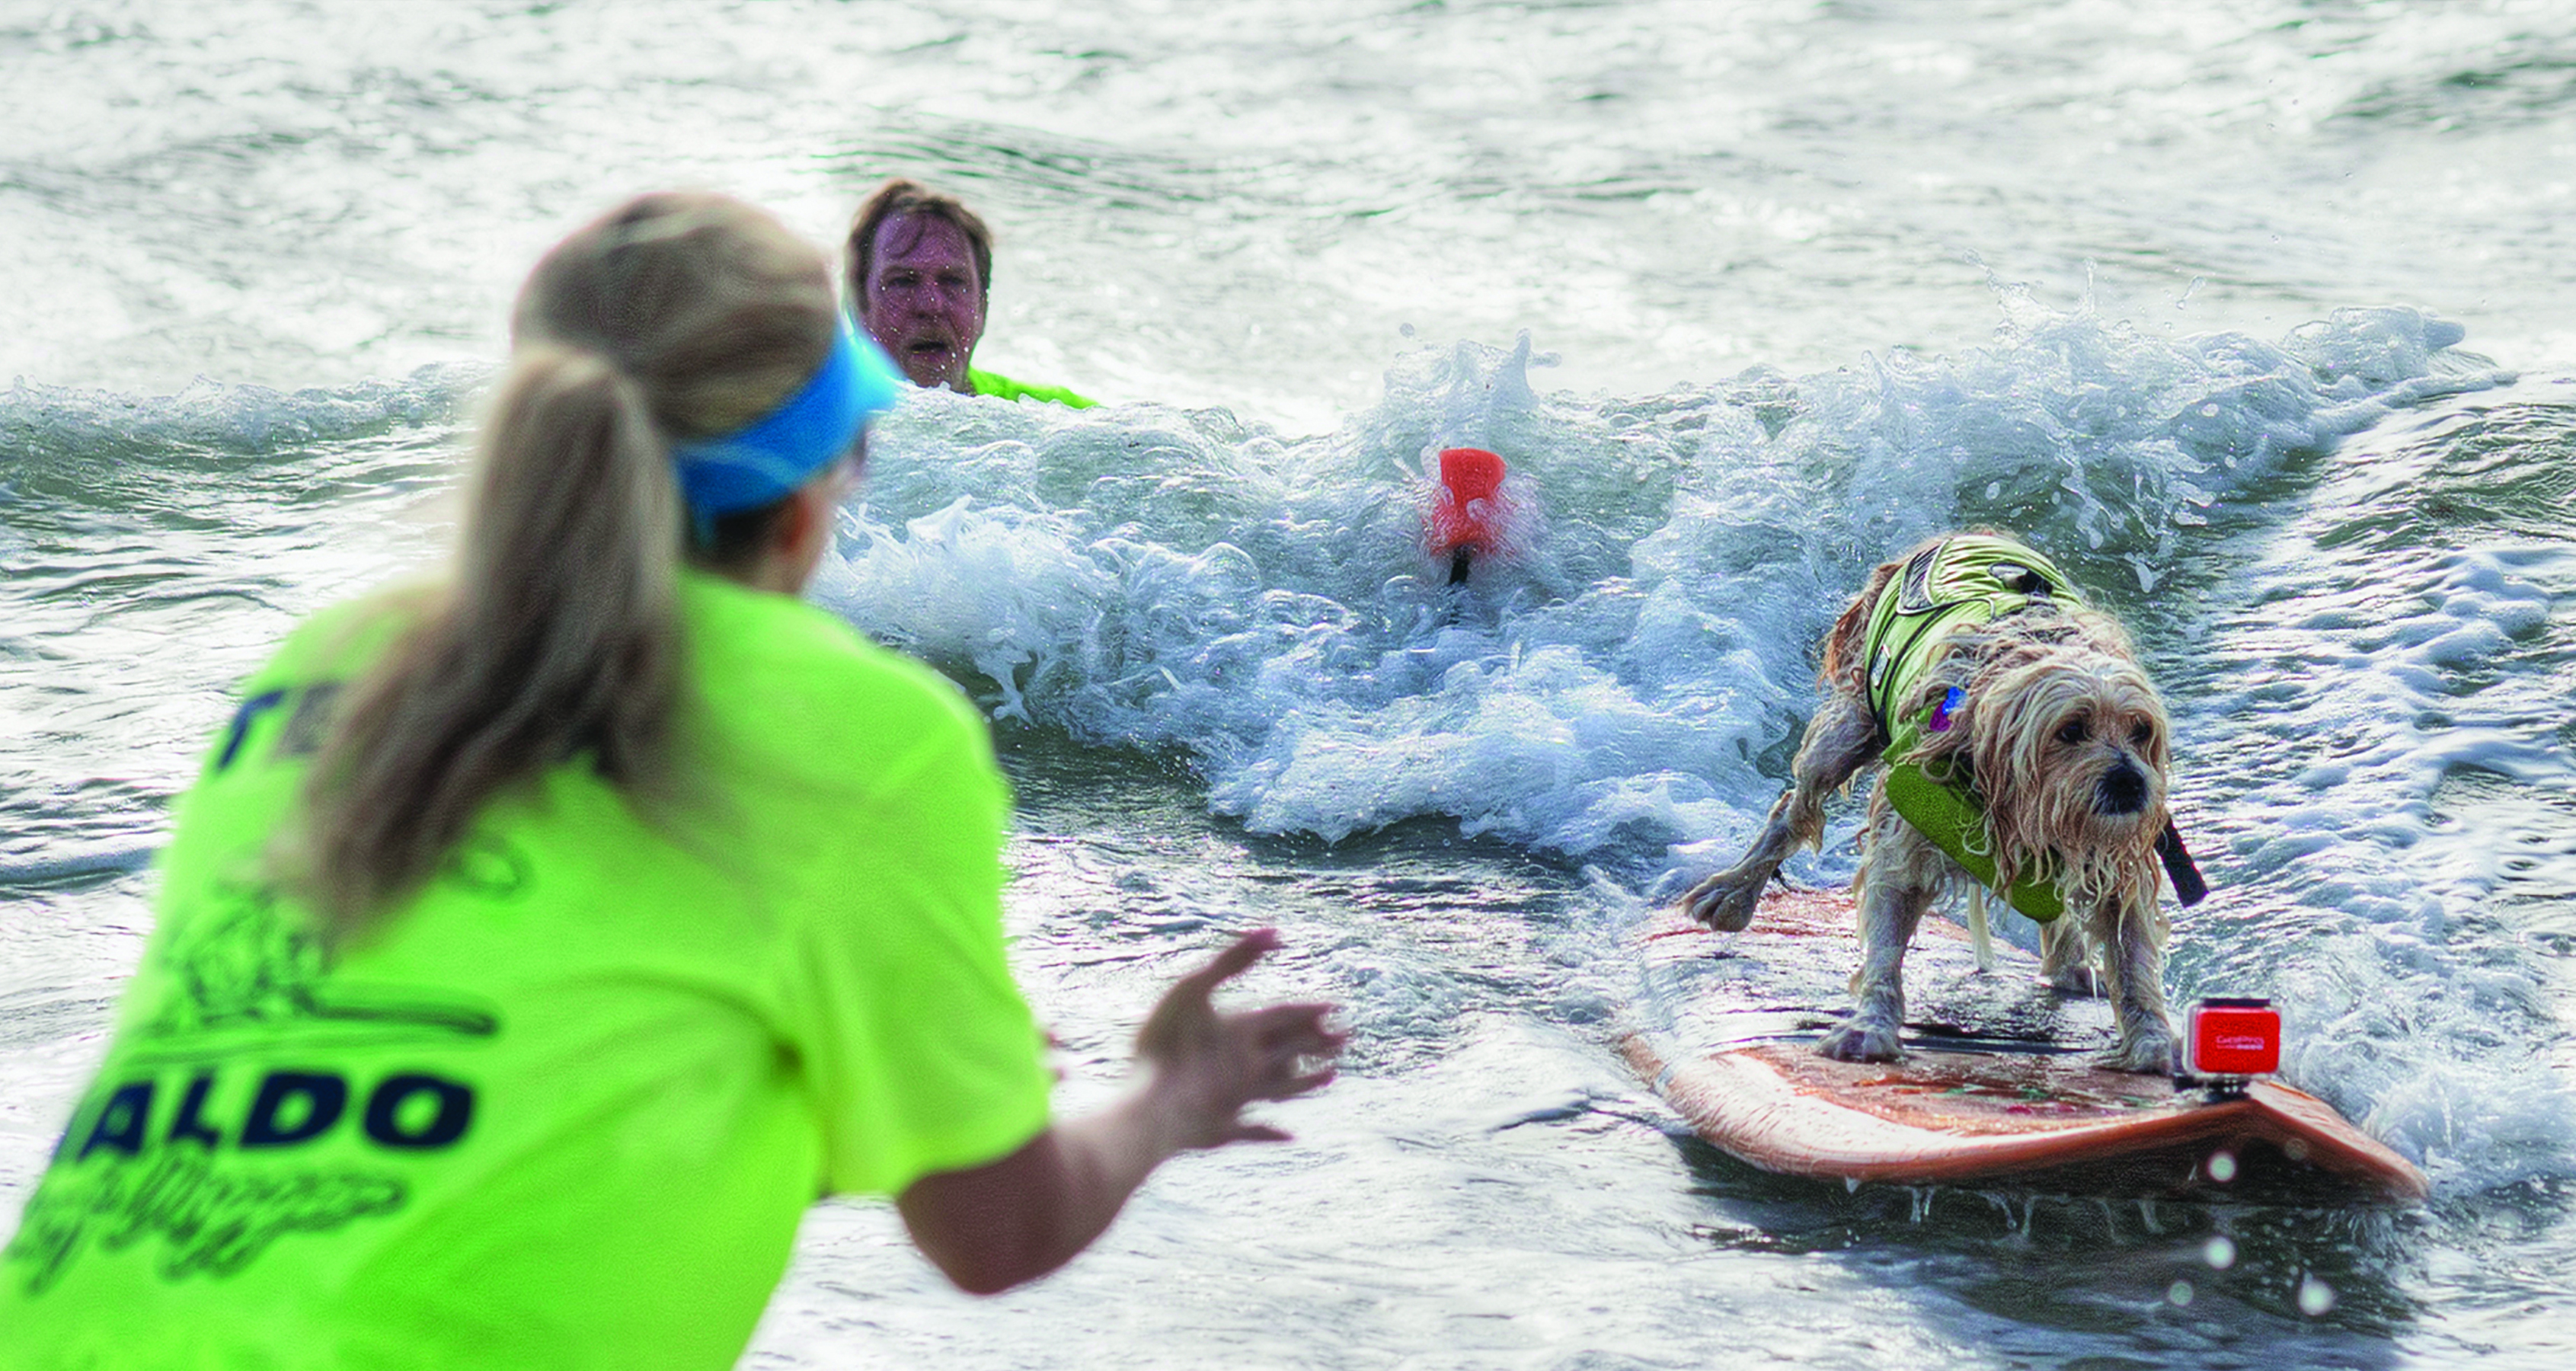 Hang 20 Surf Dog Classic Postponed Due To Health Advisory